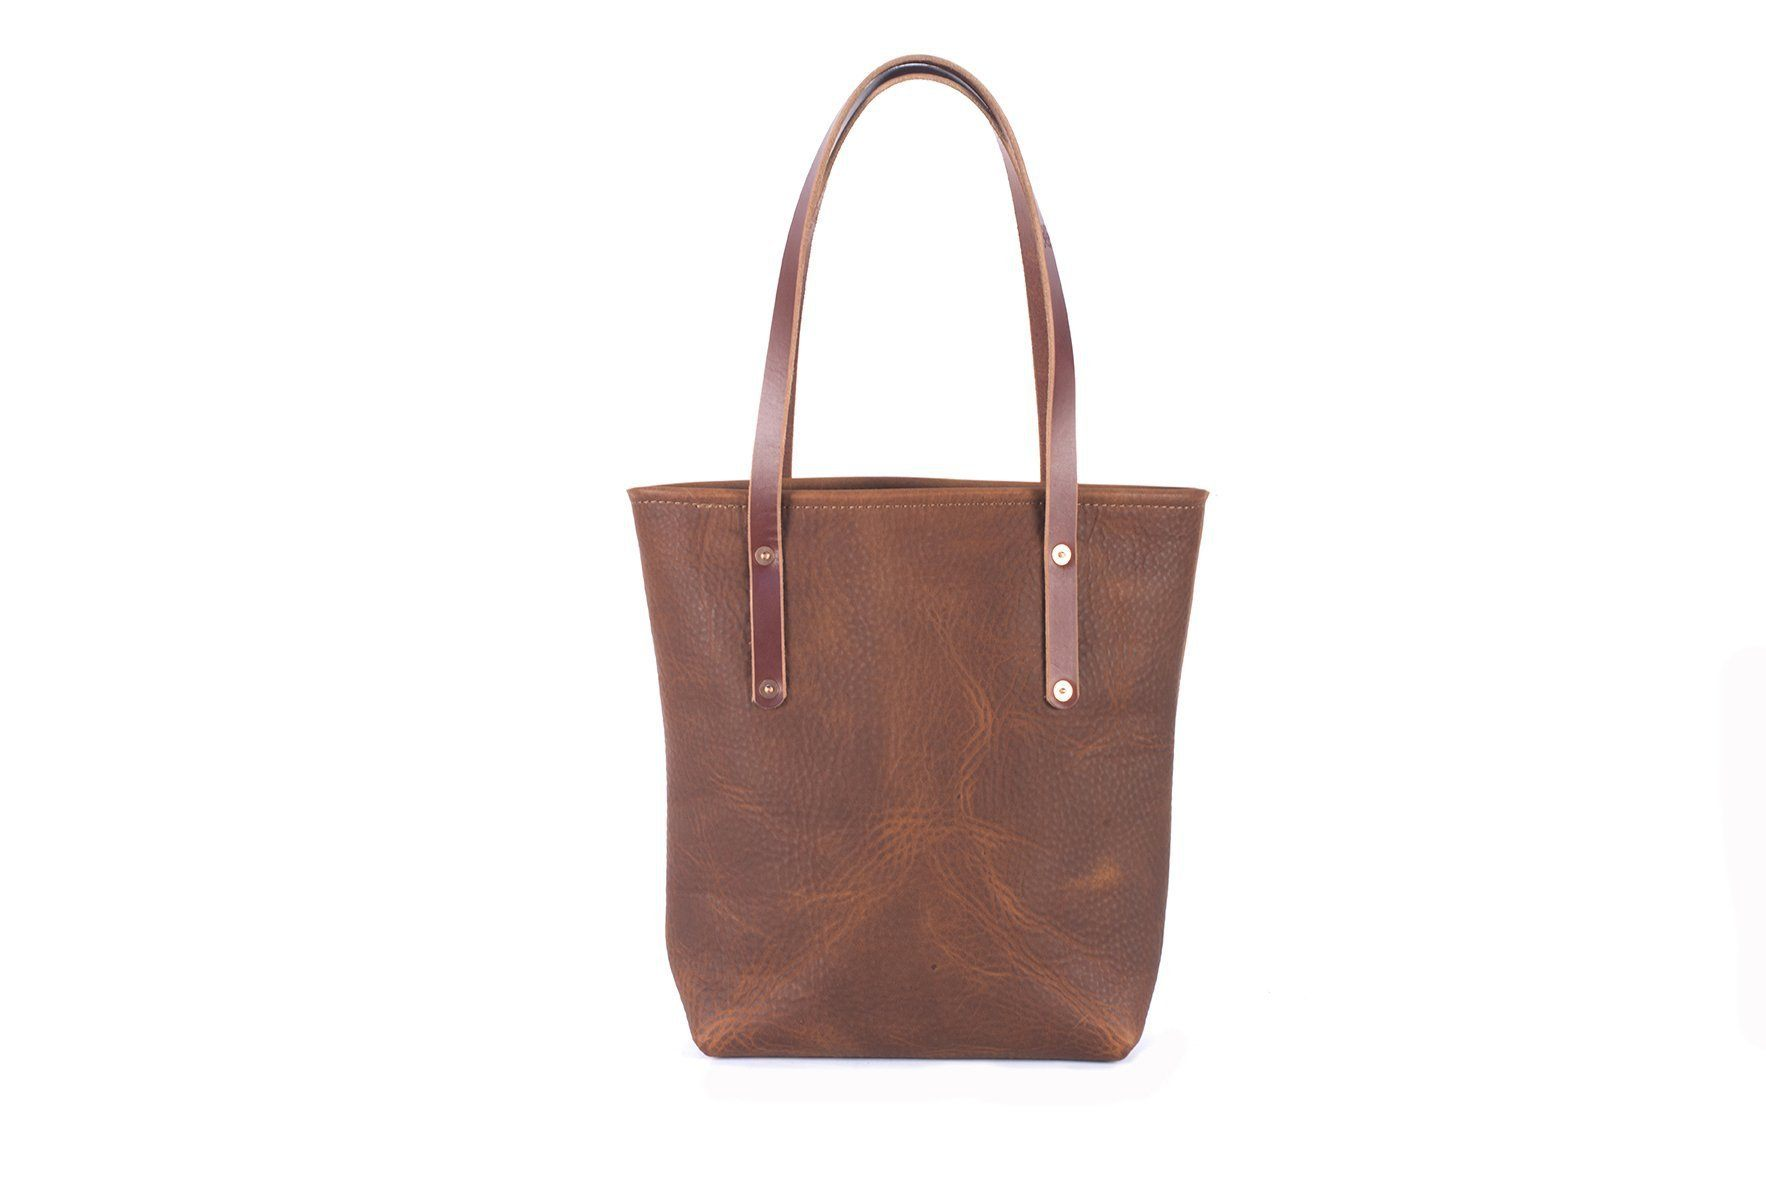 AVERY LEATHER TOTE BAG - SLIM MEDIUM